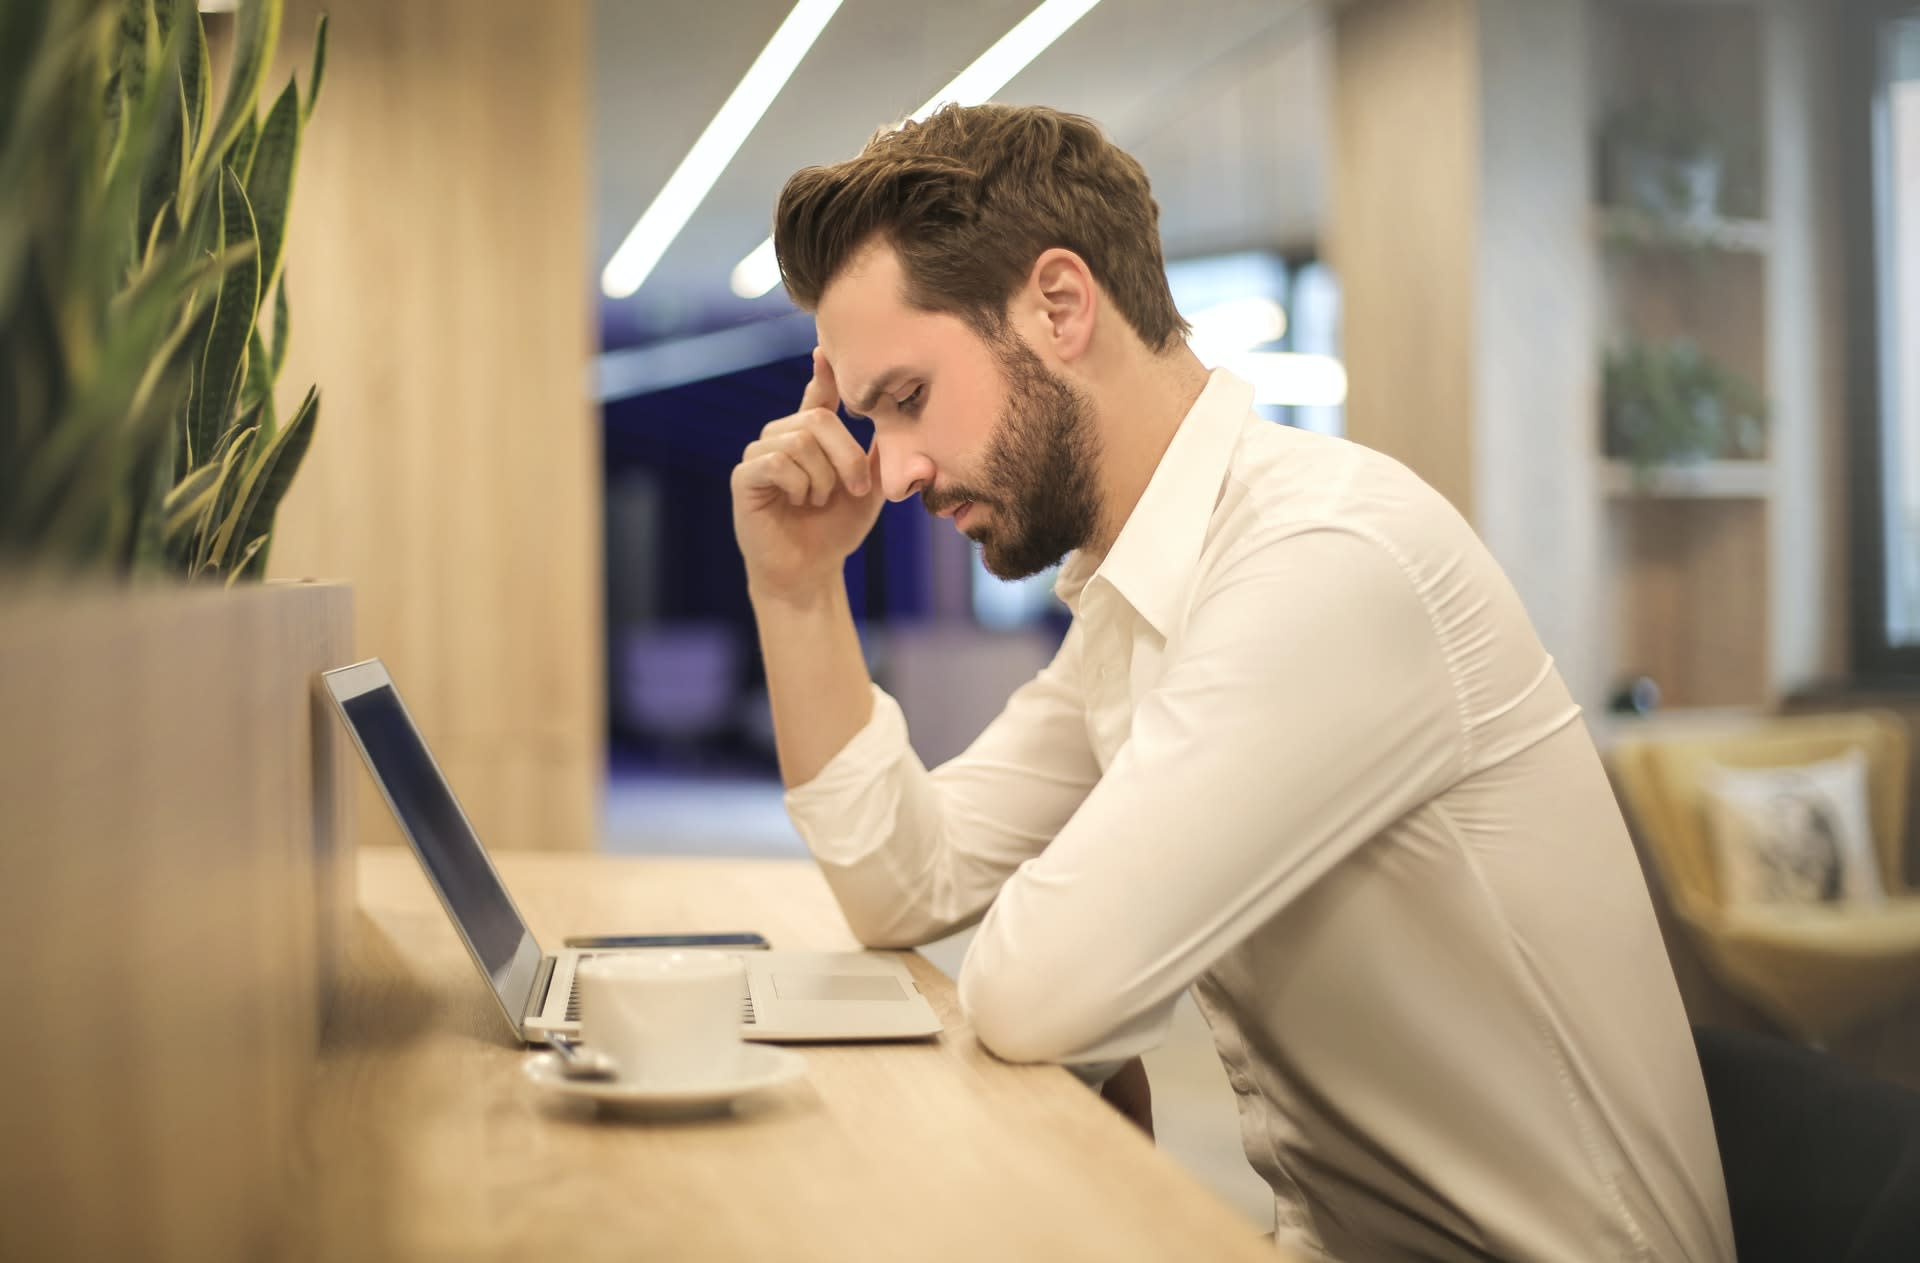 Man working and wishing he could take a nap